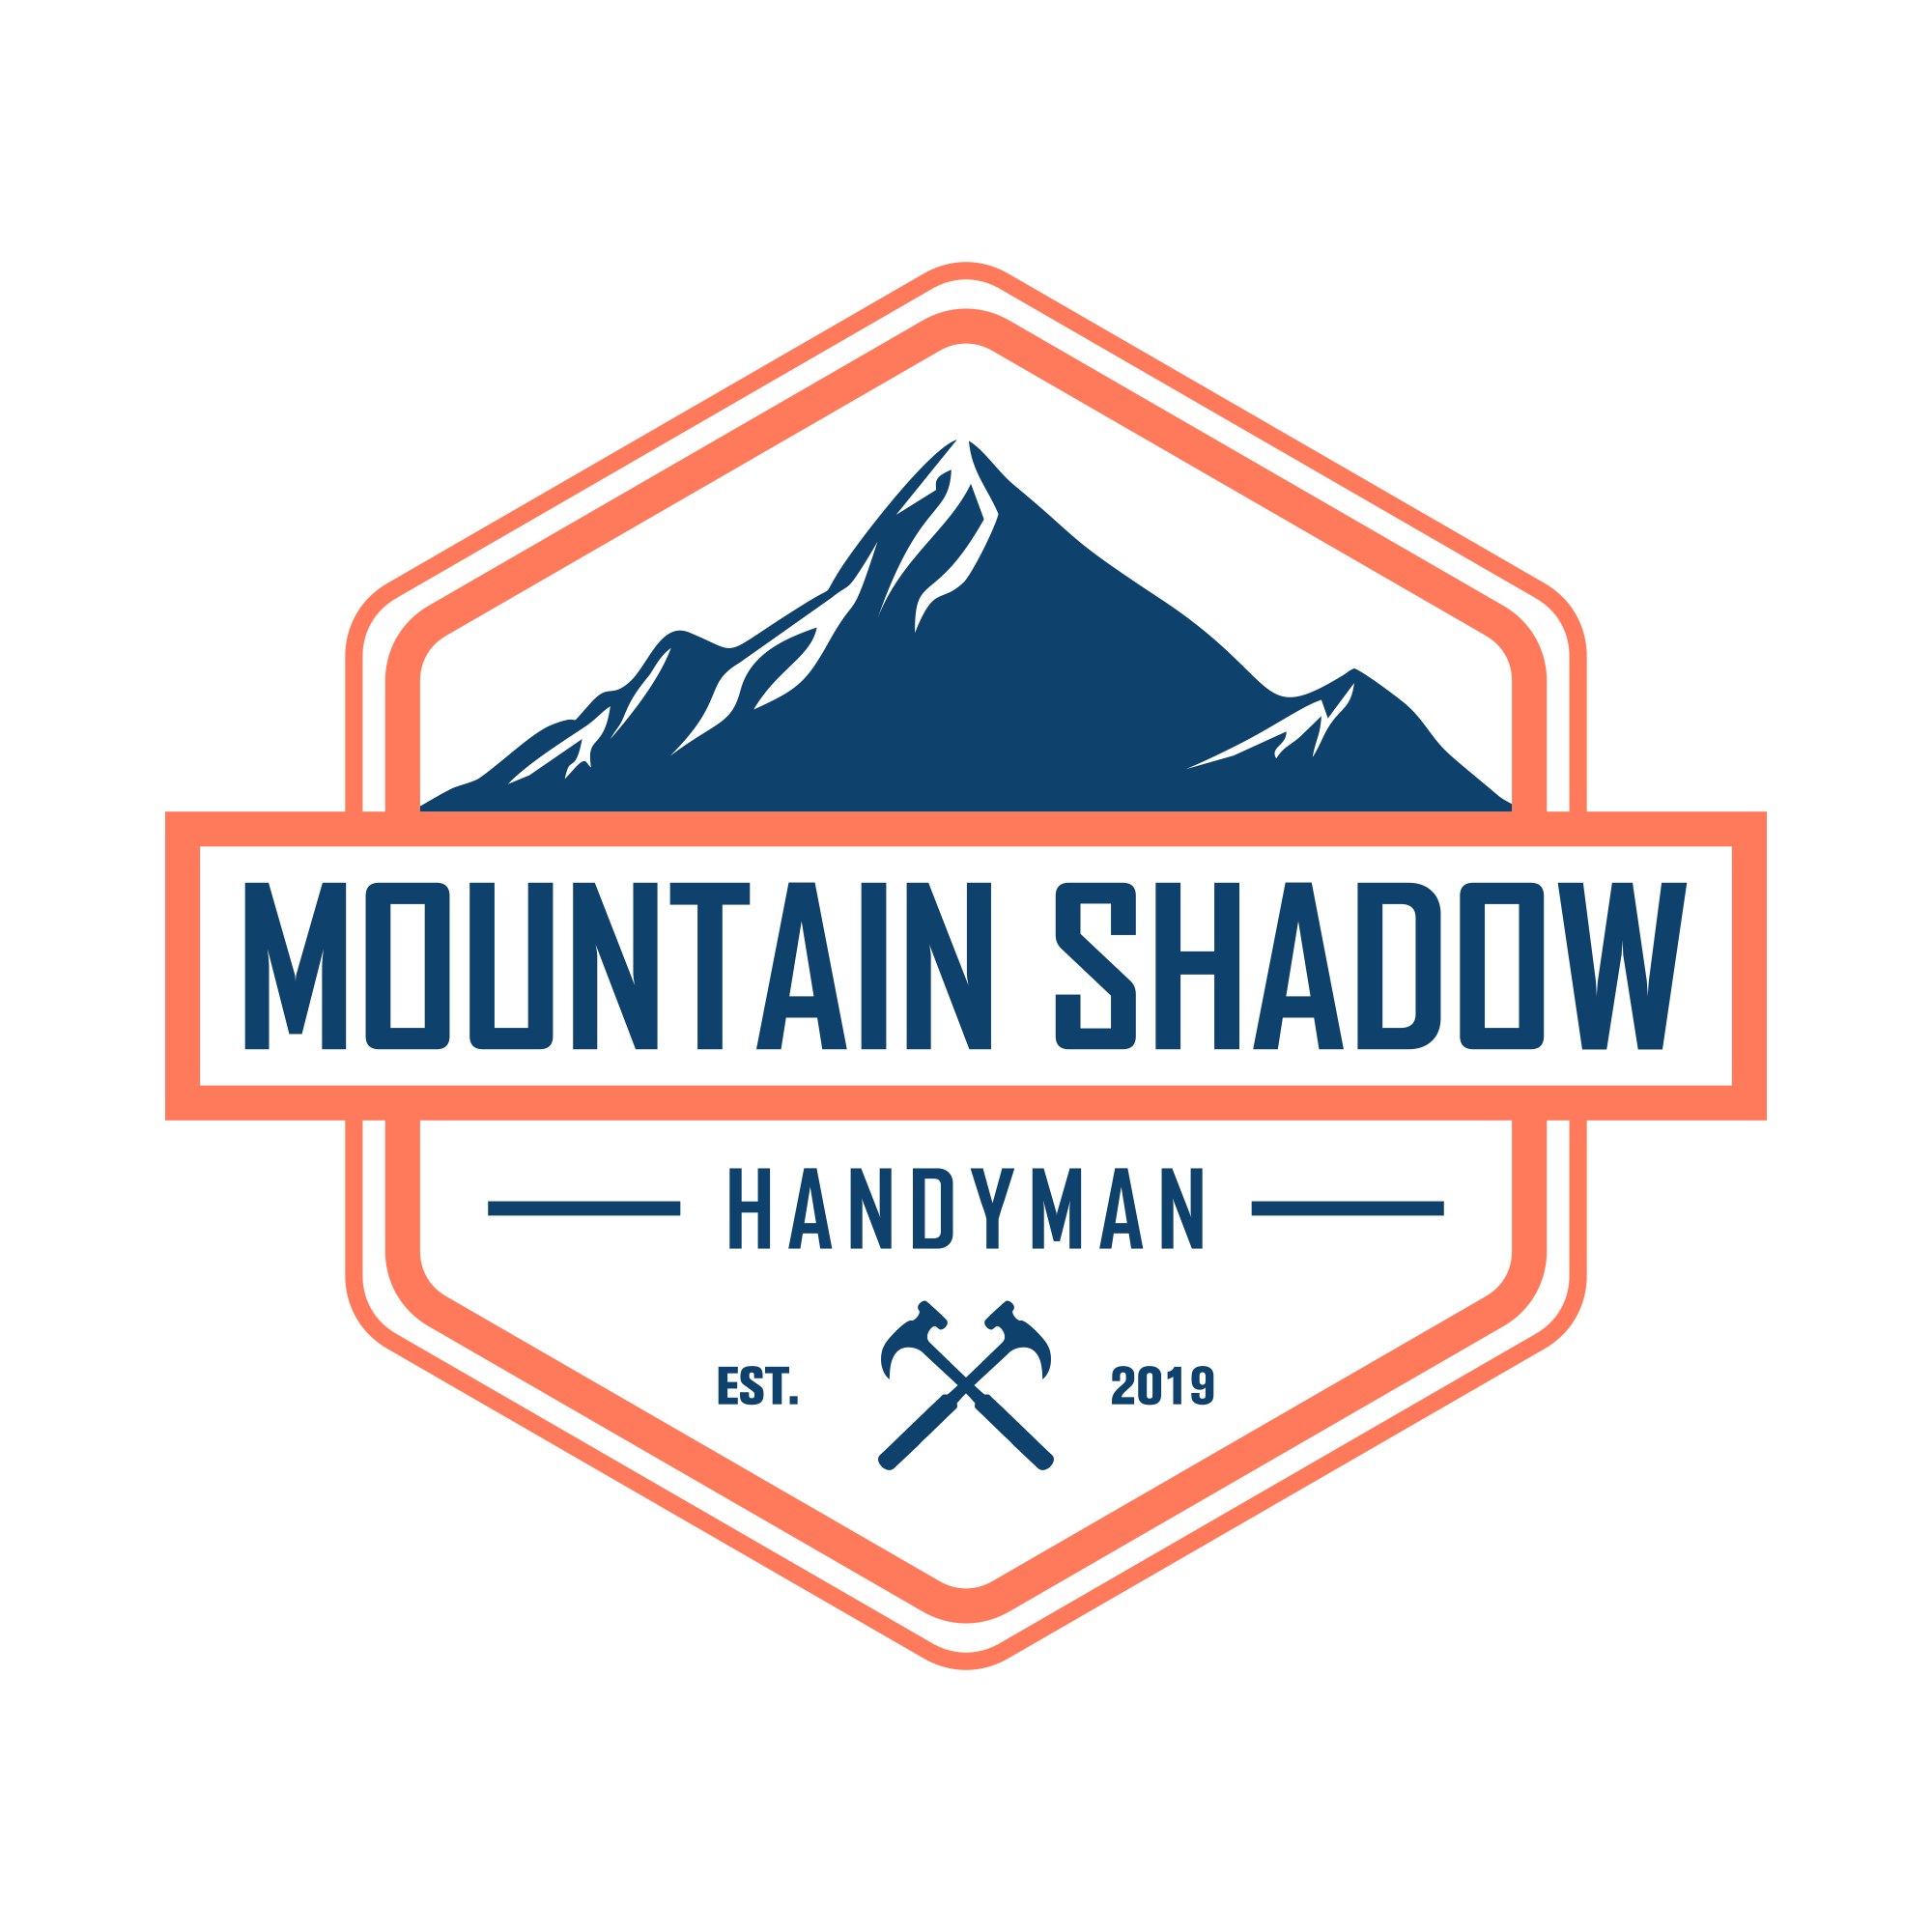 Handyman logo That will get your attention while still classy